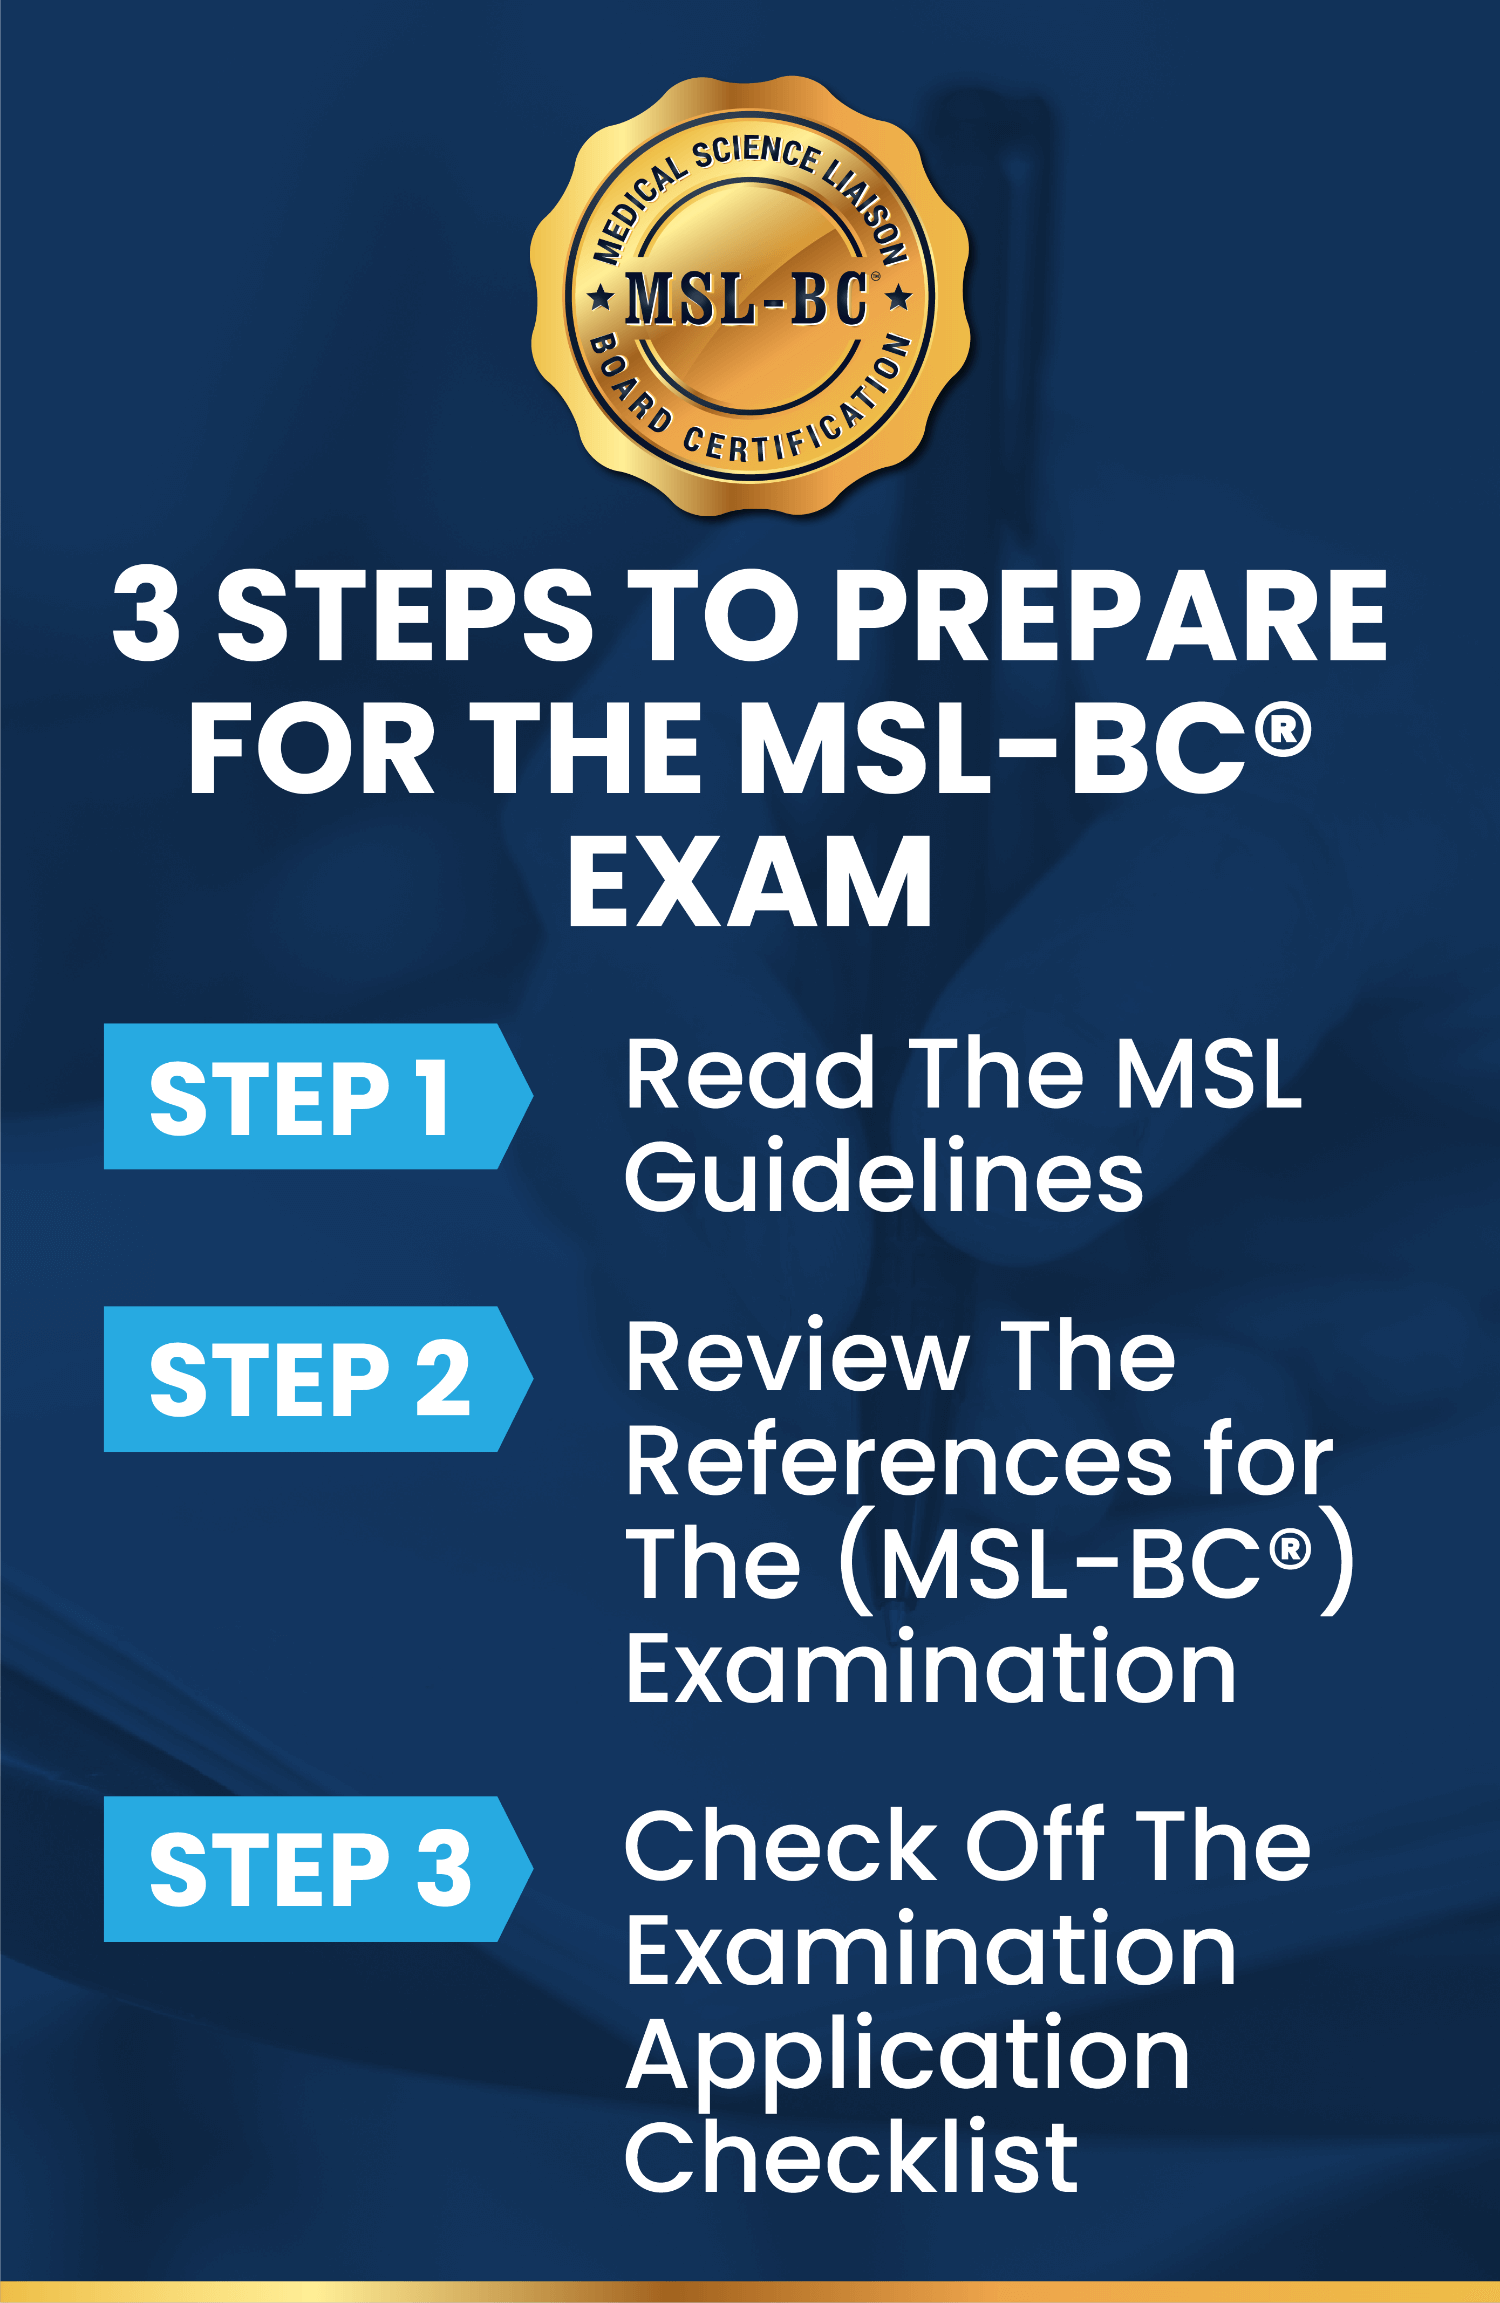 3 Steps to Prepare for The MSL-BC® Exam summary of steps.